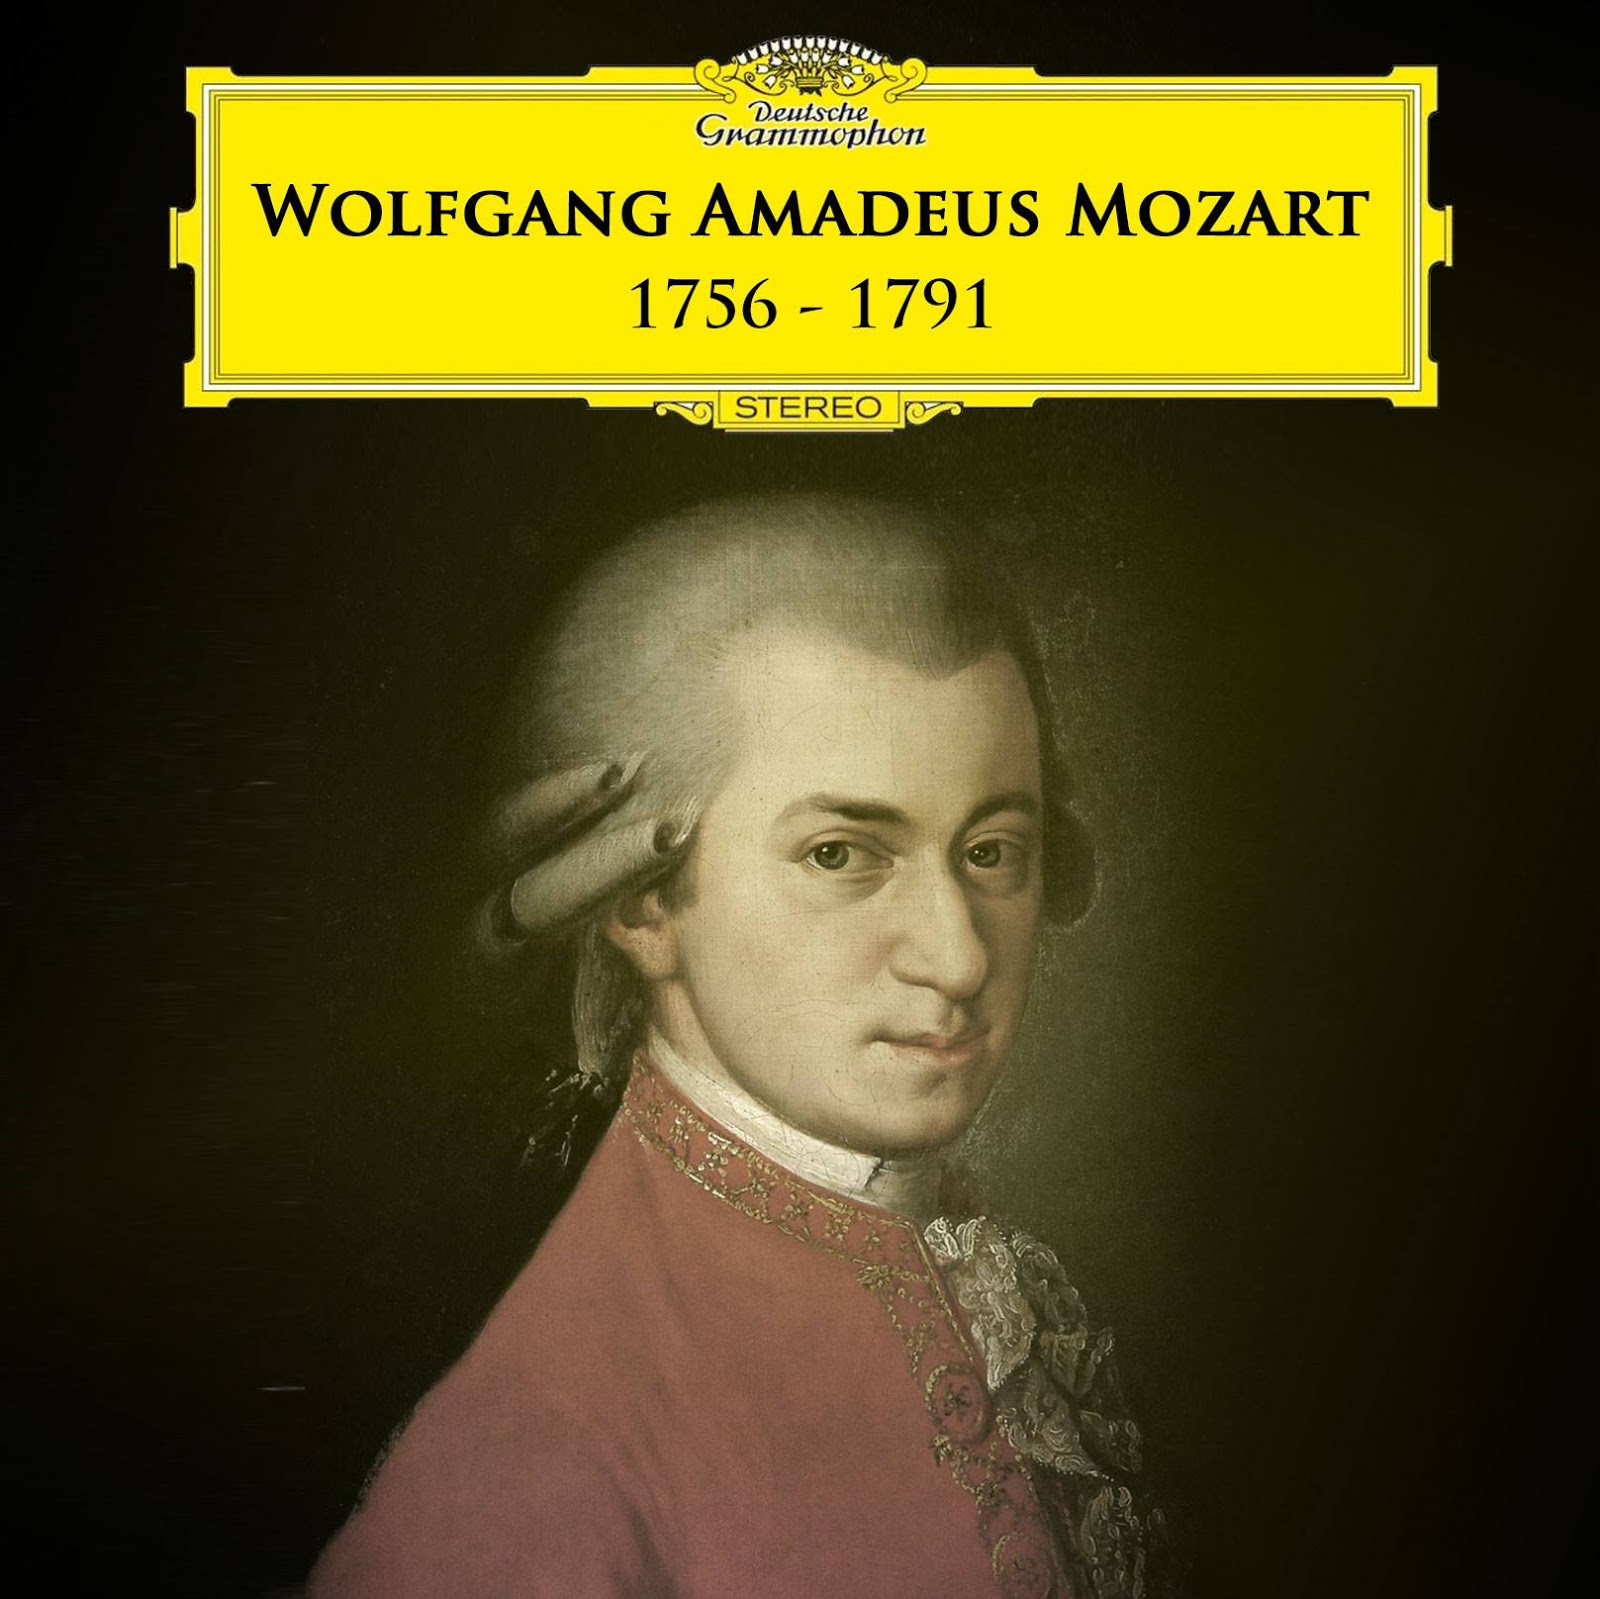 a biography of wolfgang amadeus mozart a composer